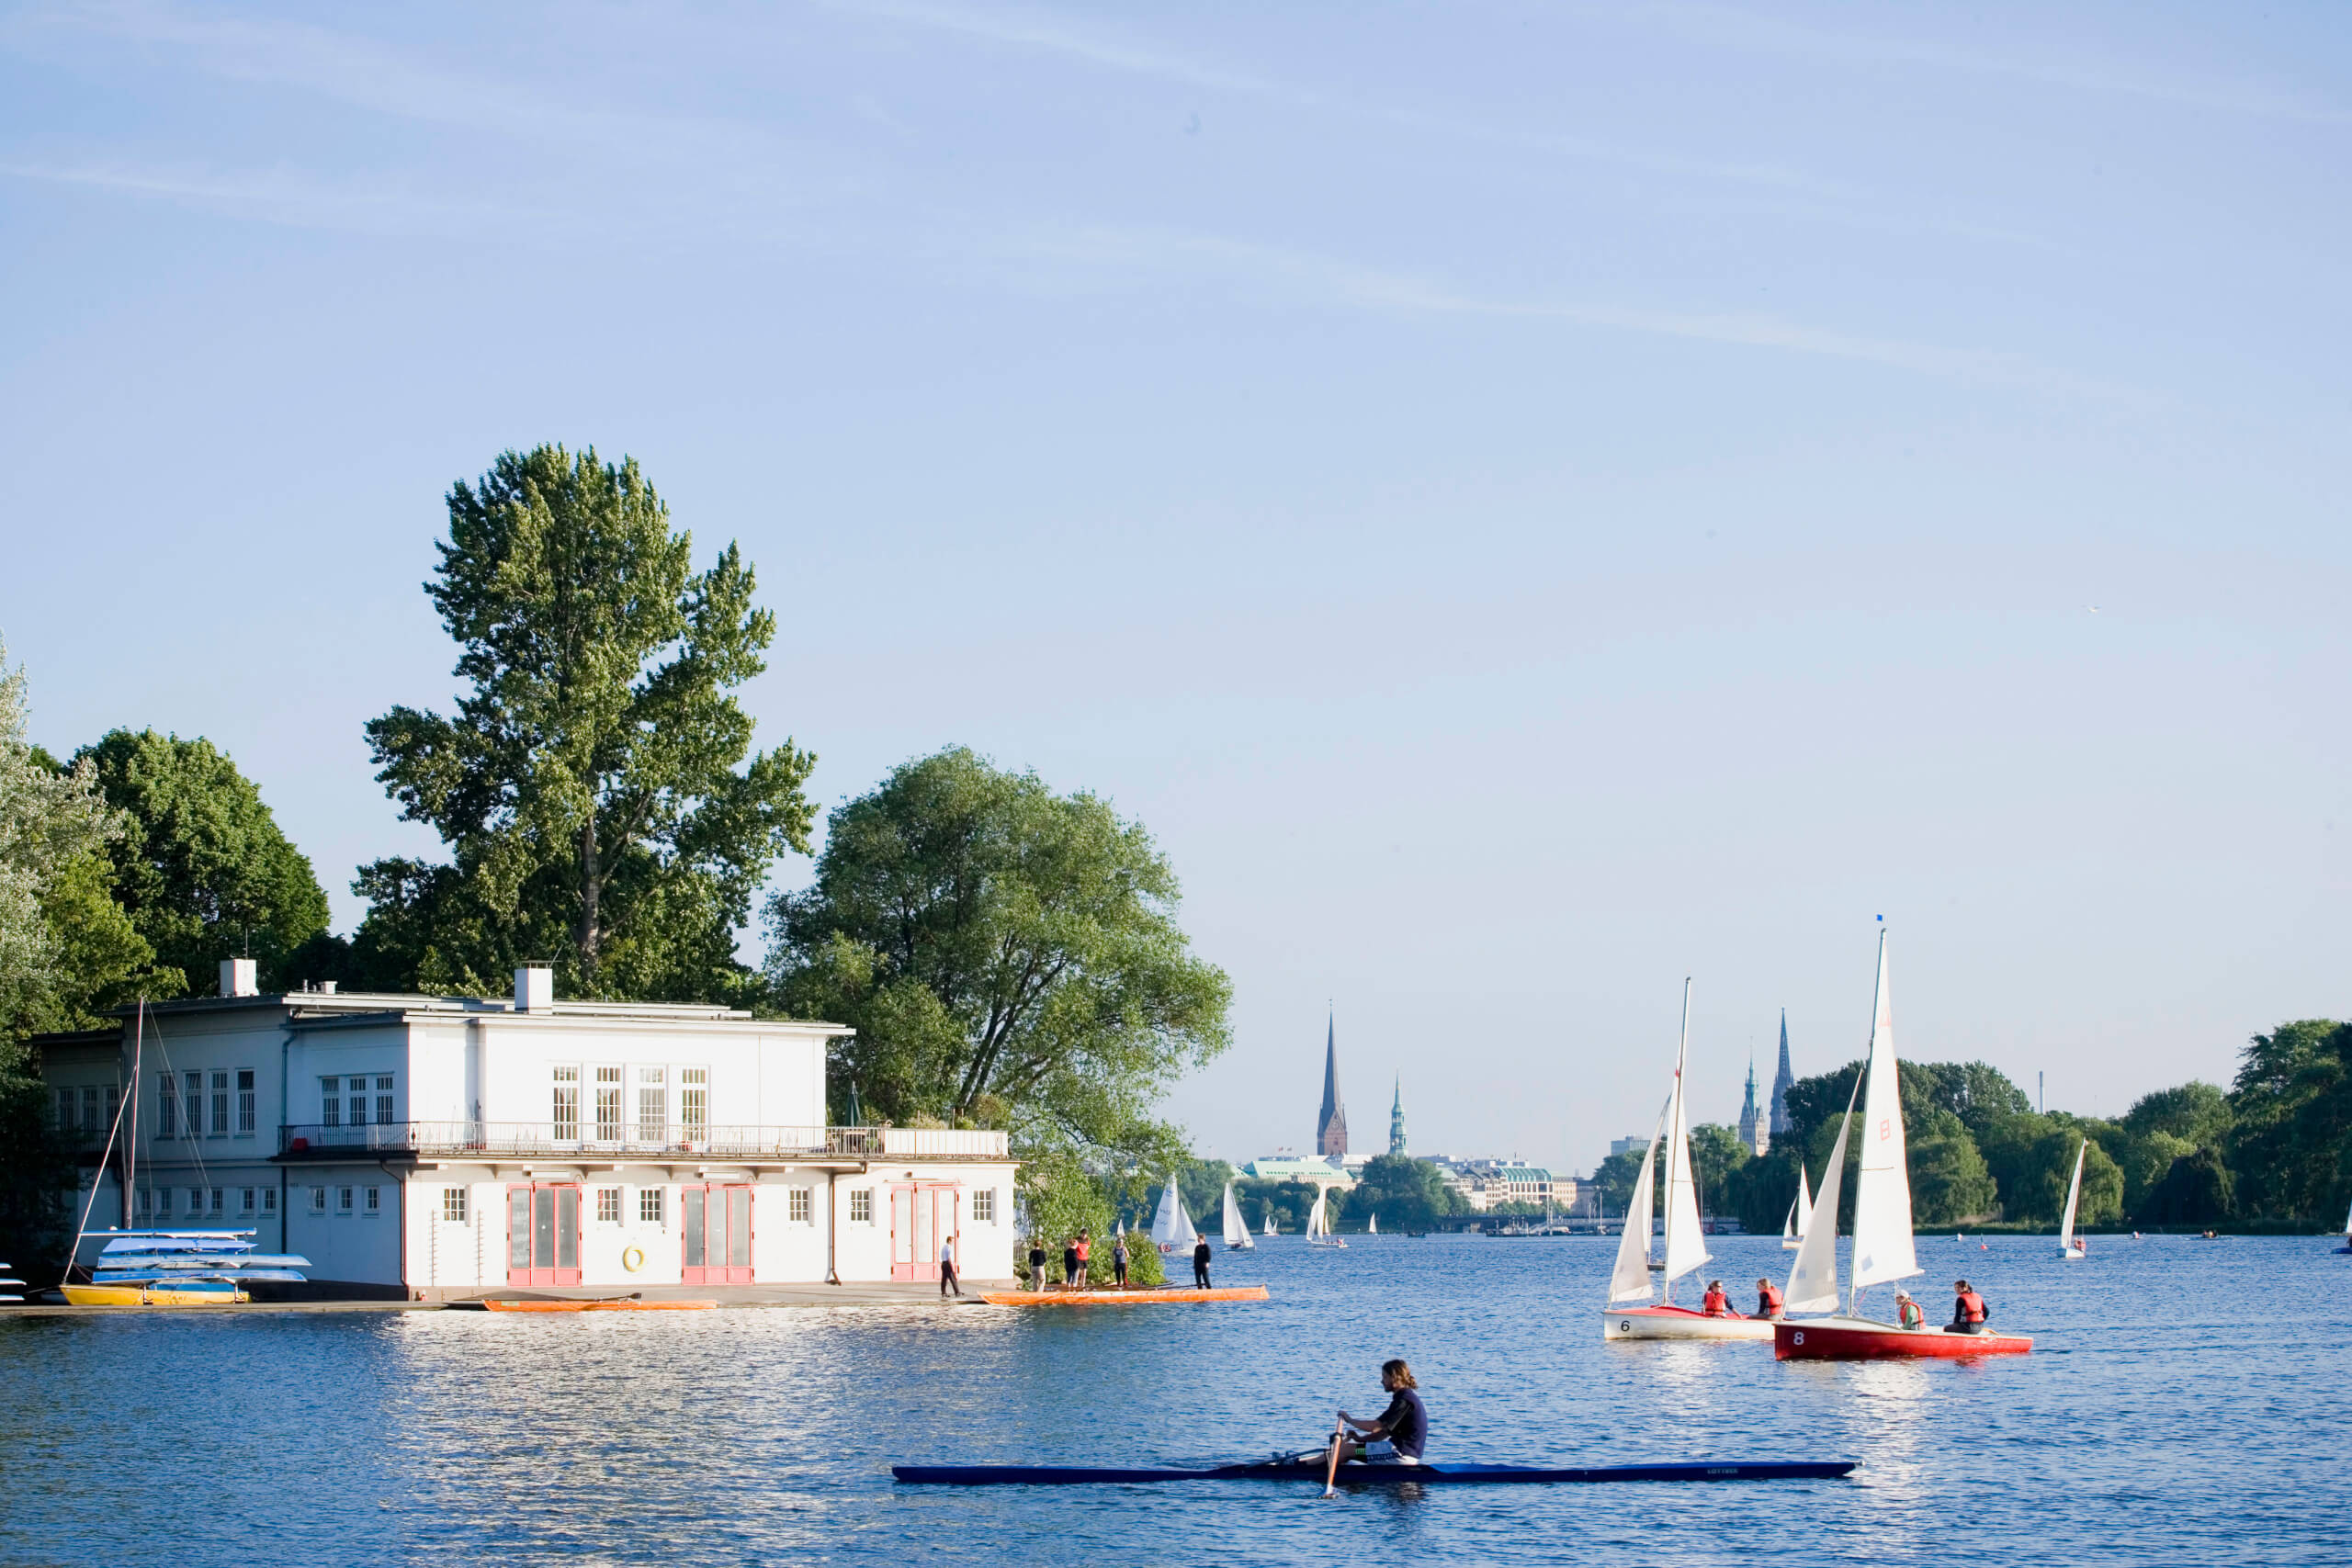 Rent a pedalo around Alster lake, Marketstrasse, Hamburg, germany, where to travel in germany